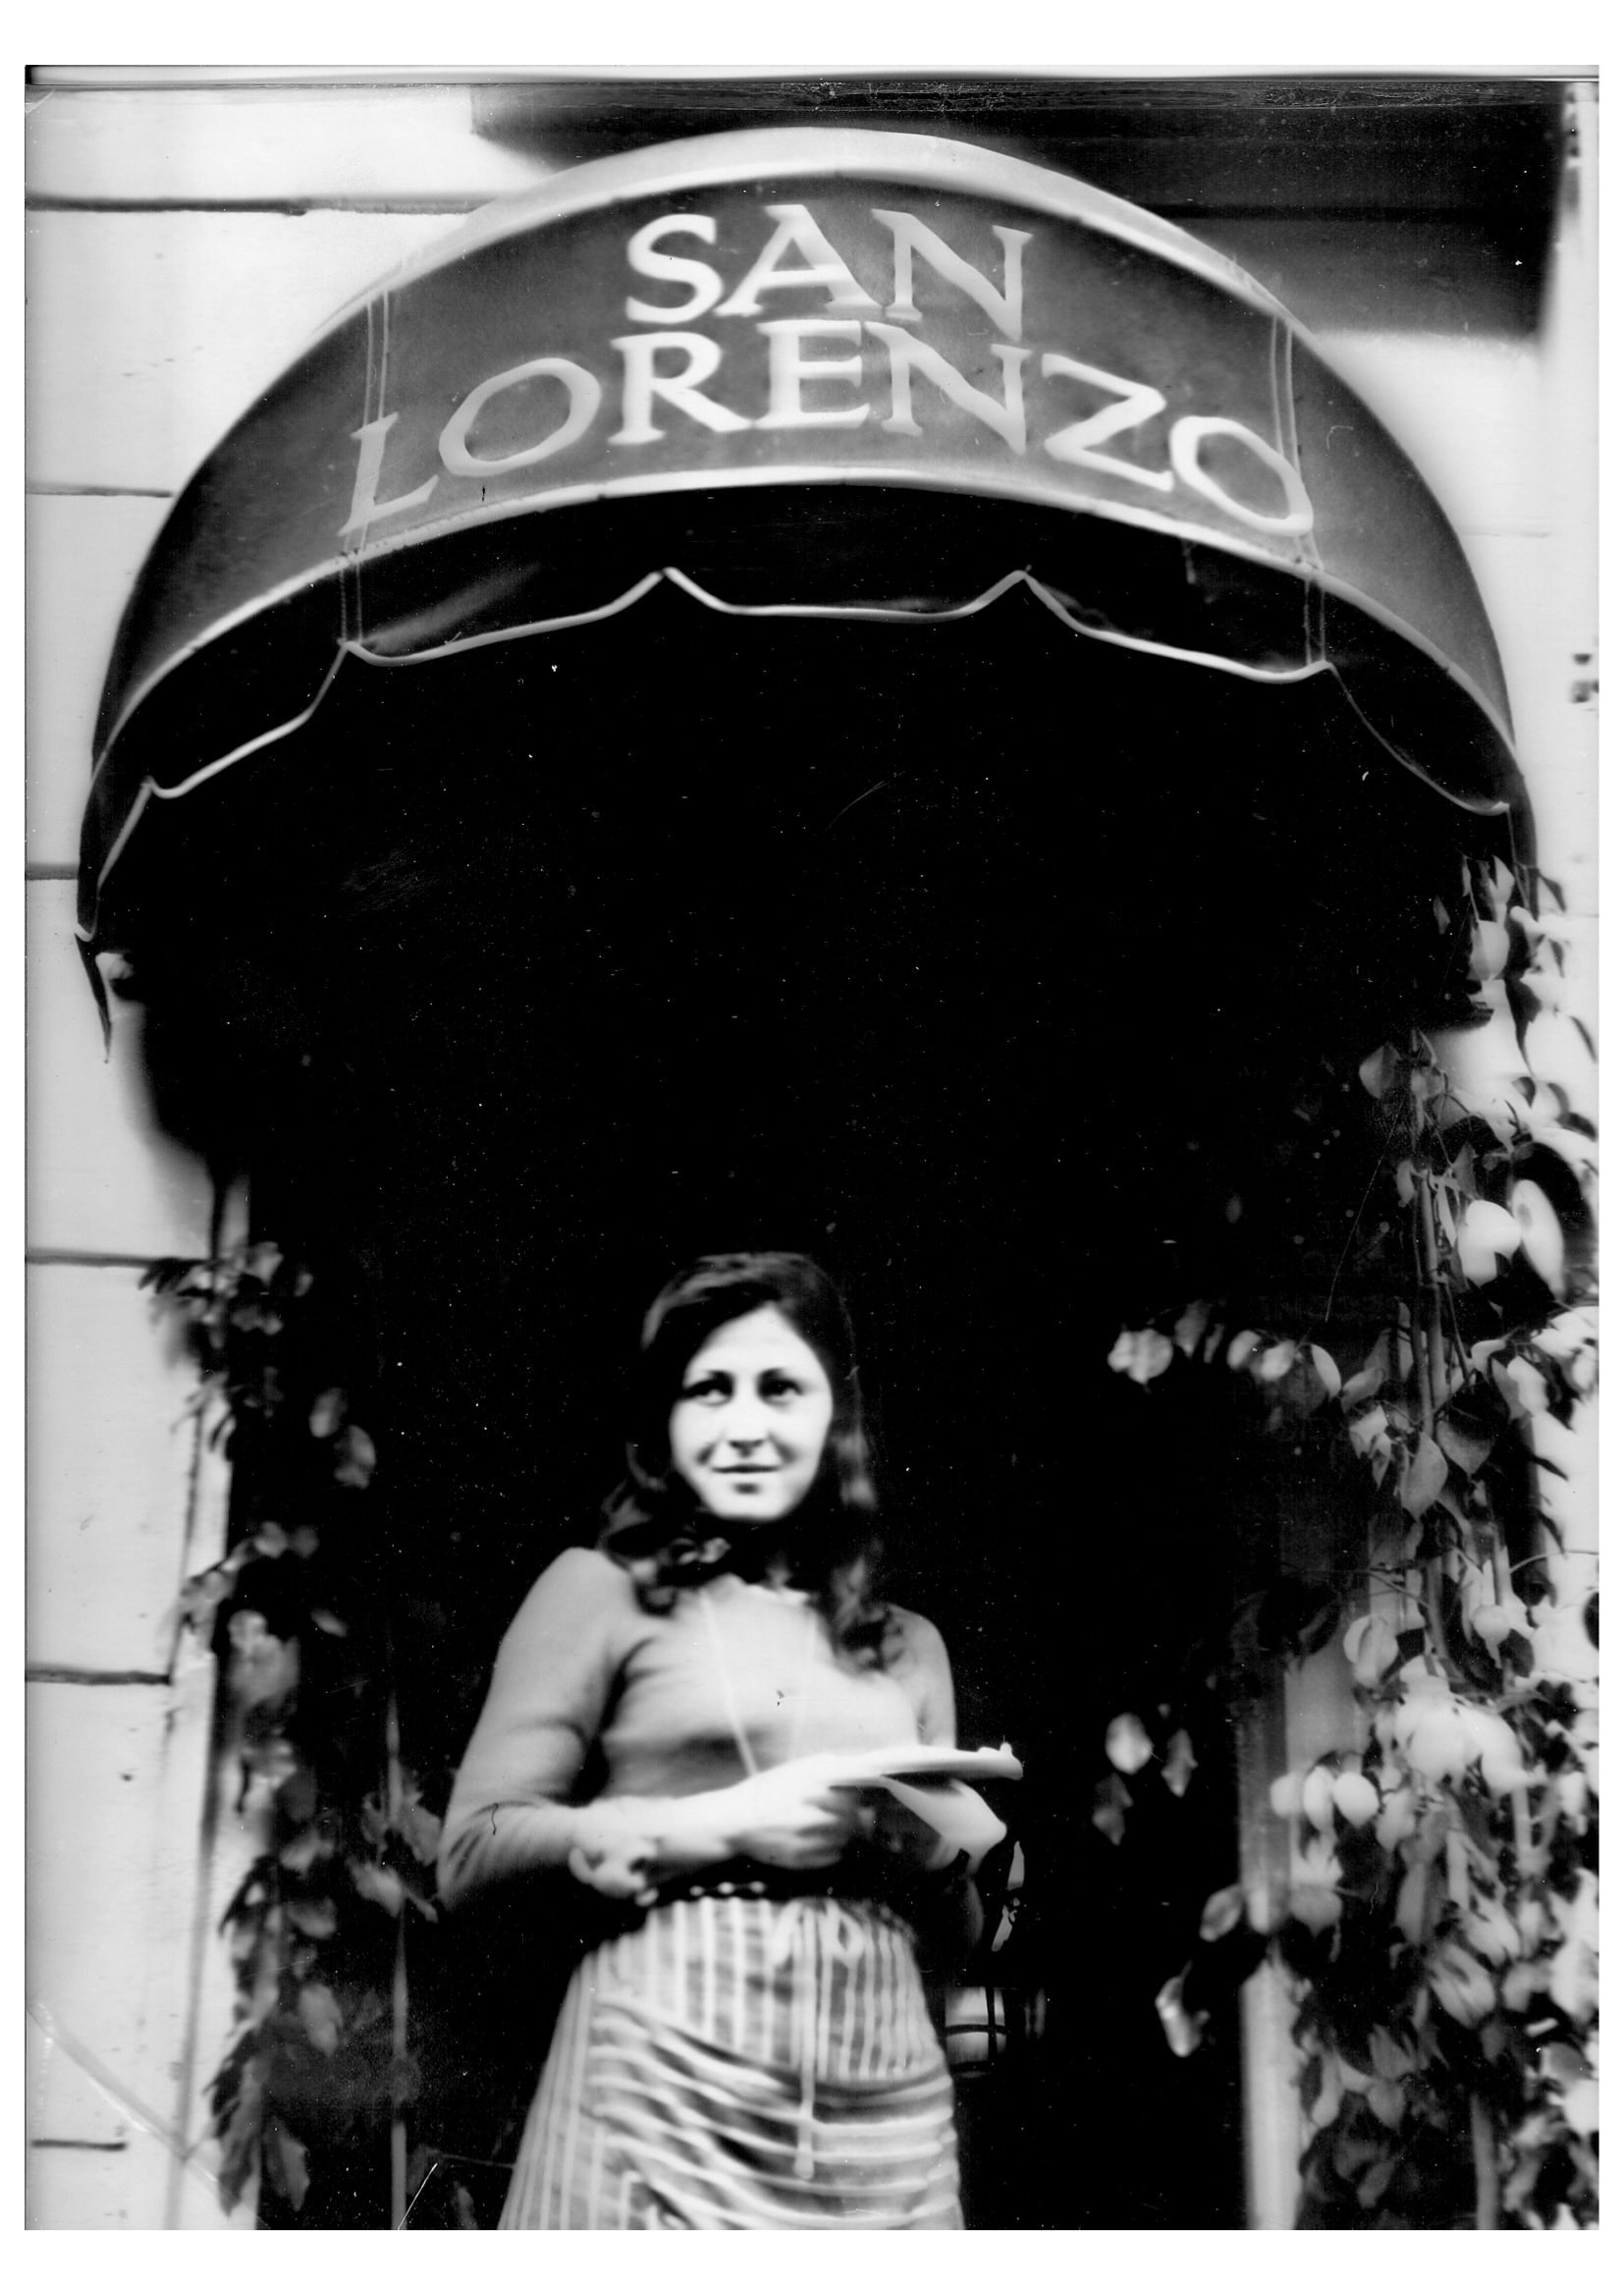 Mara Berni - an extraordinary woman, who's maternal style spanned several generations across five decades.